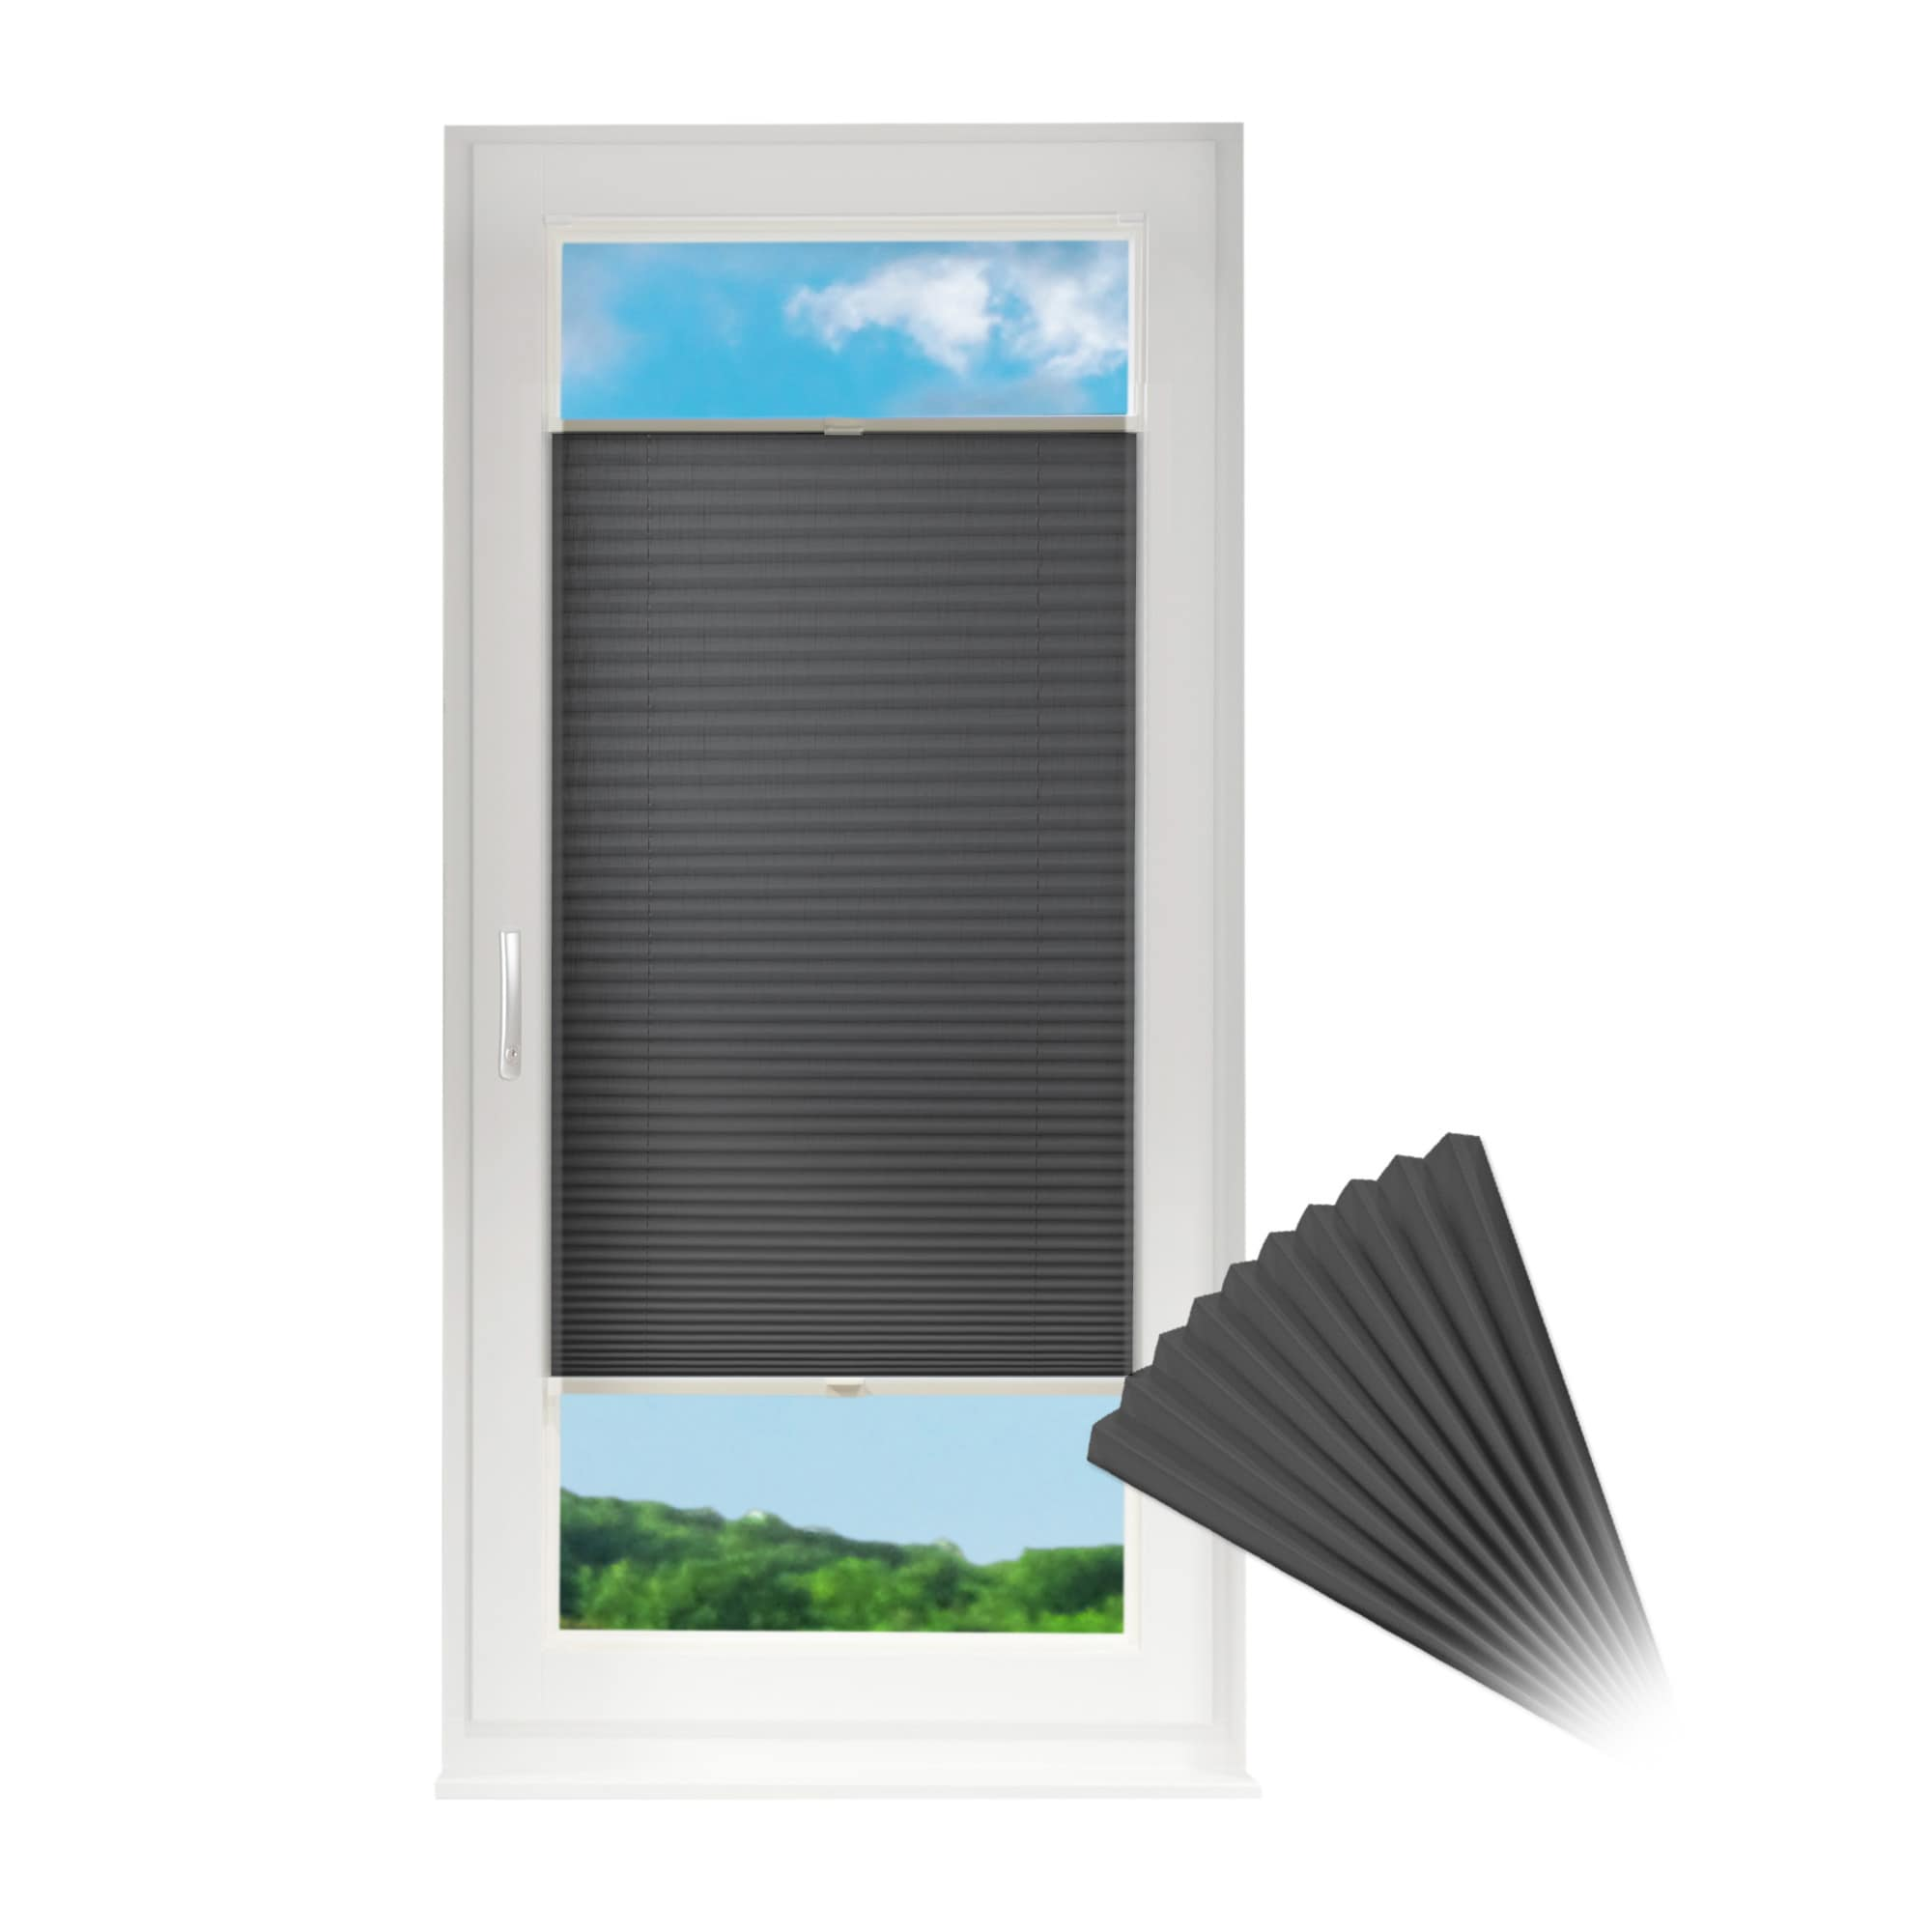 Plissee f r fenster t ren rollo jalousie opt klemmfix for Fenster rollo